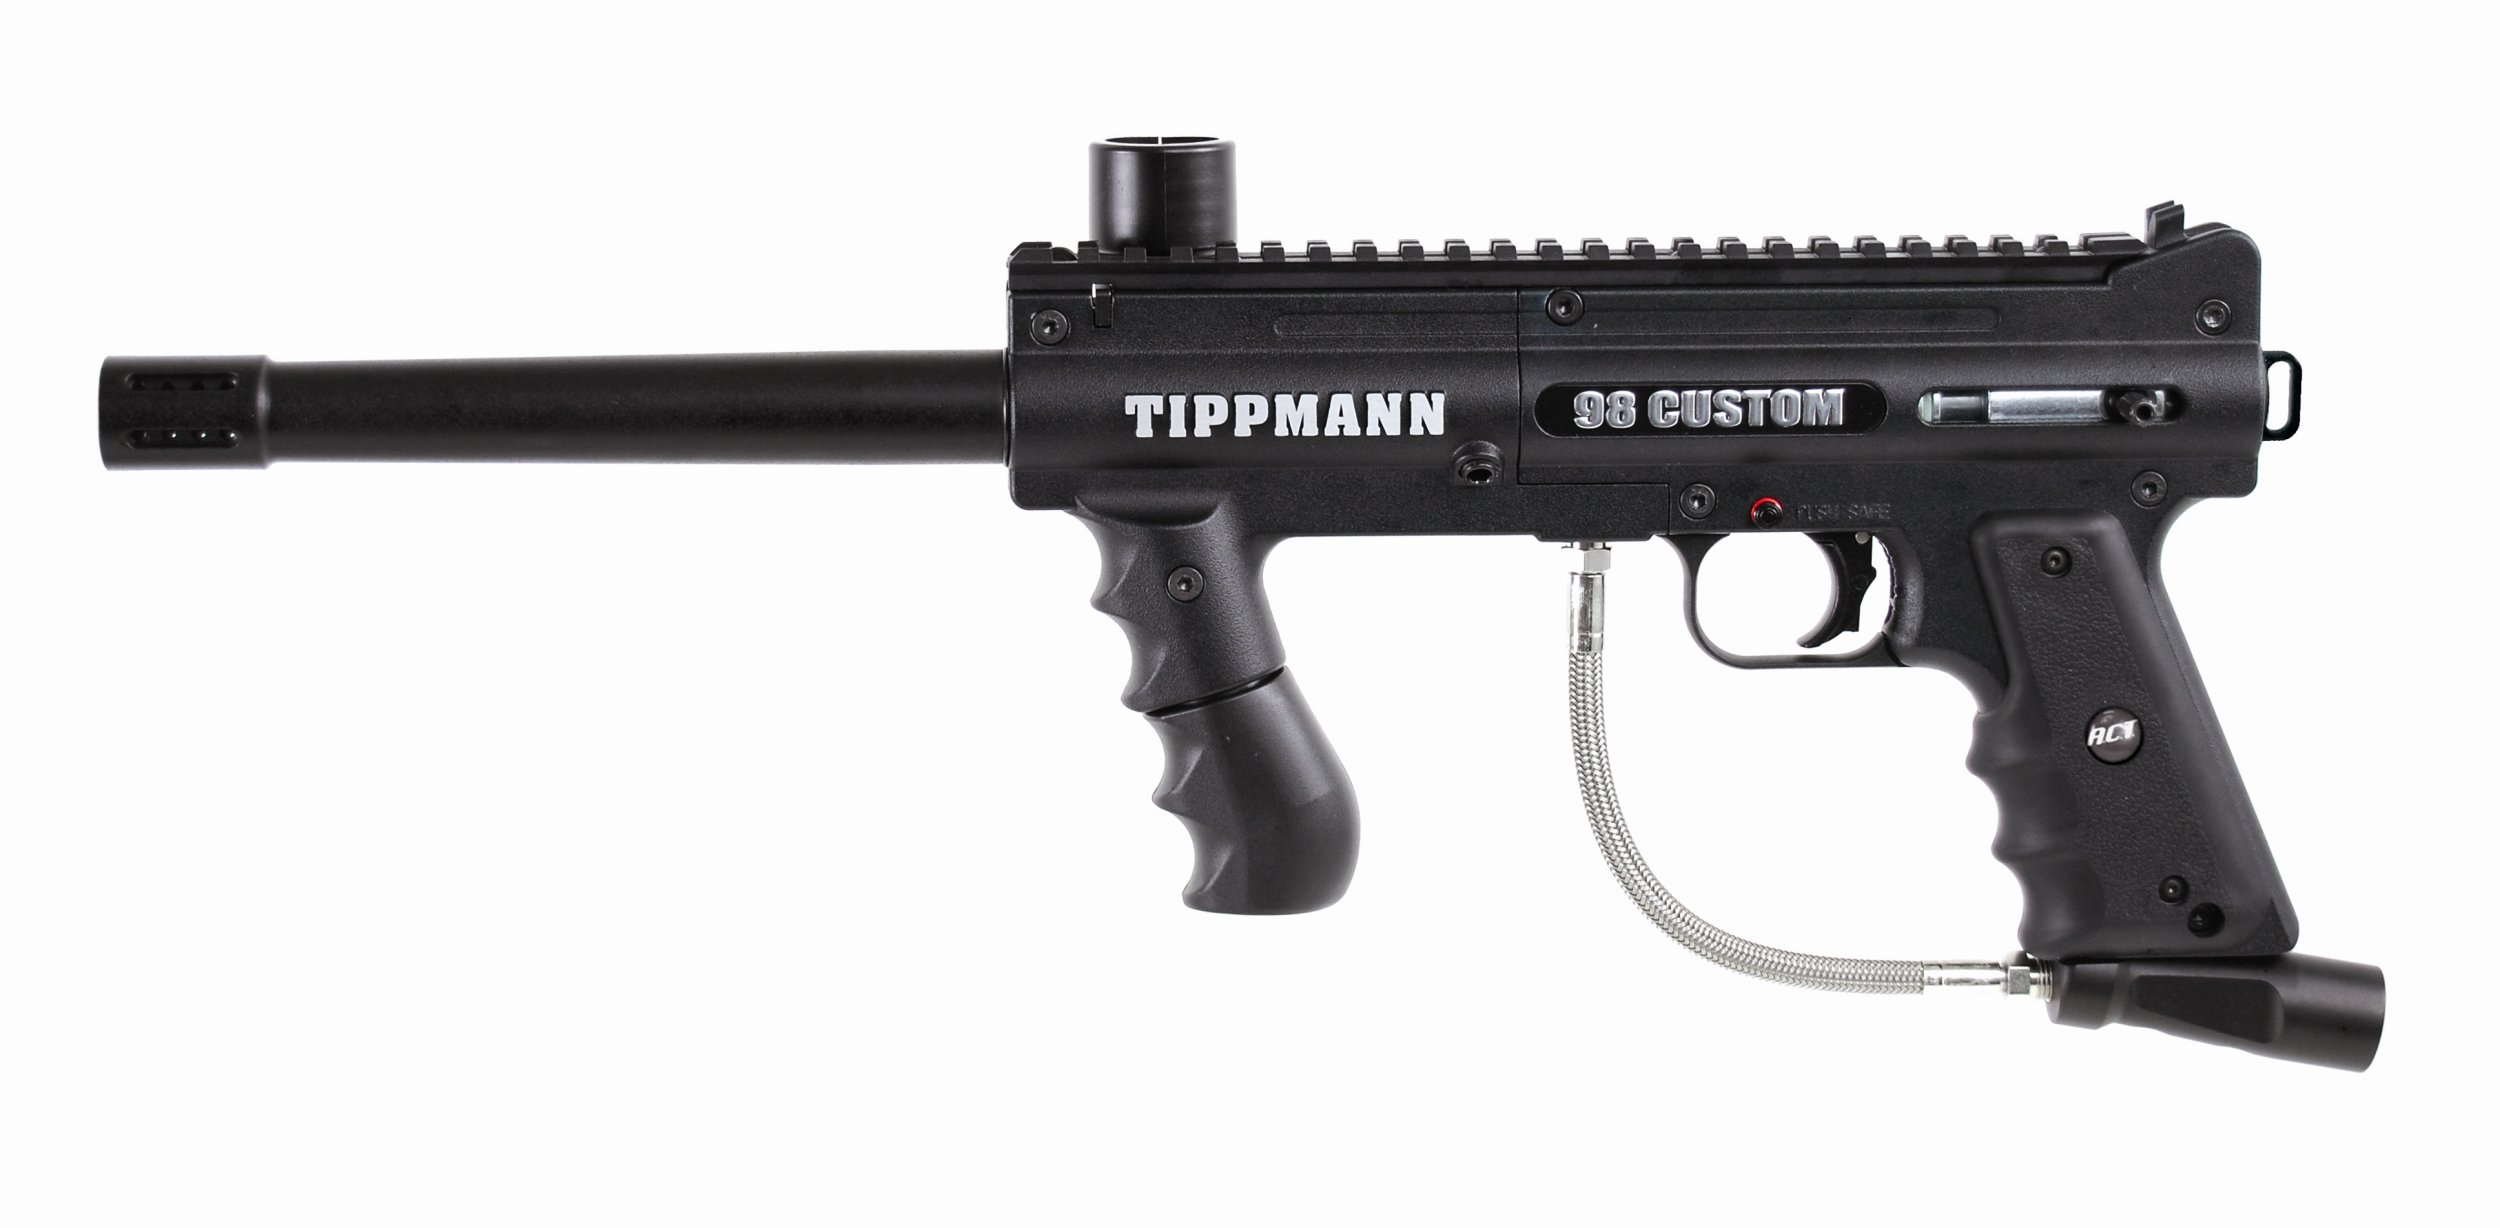 Tippmann 98 Custom Platinum Series .68 Caliber Paintball Marker with ACT by Tippmann